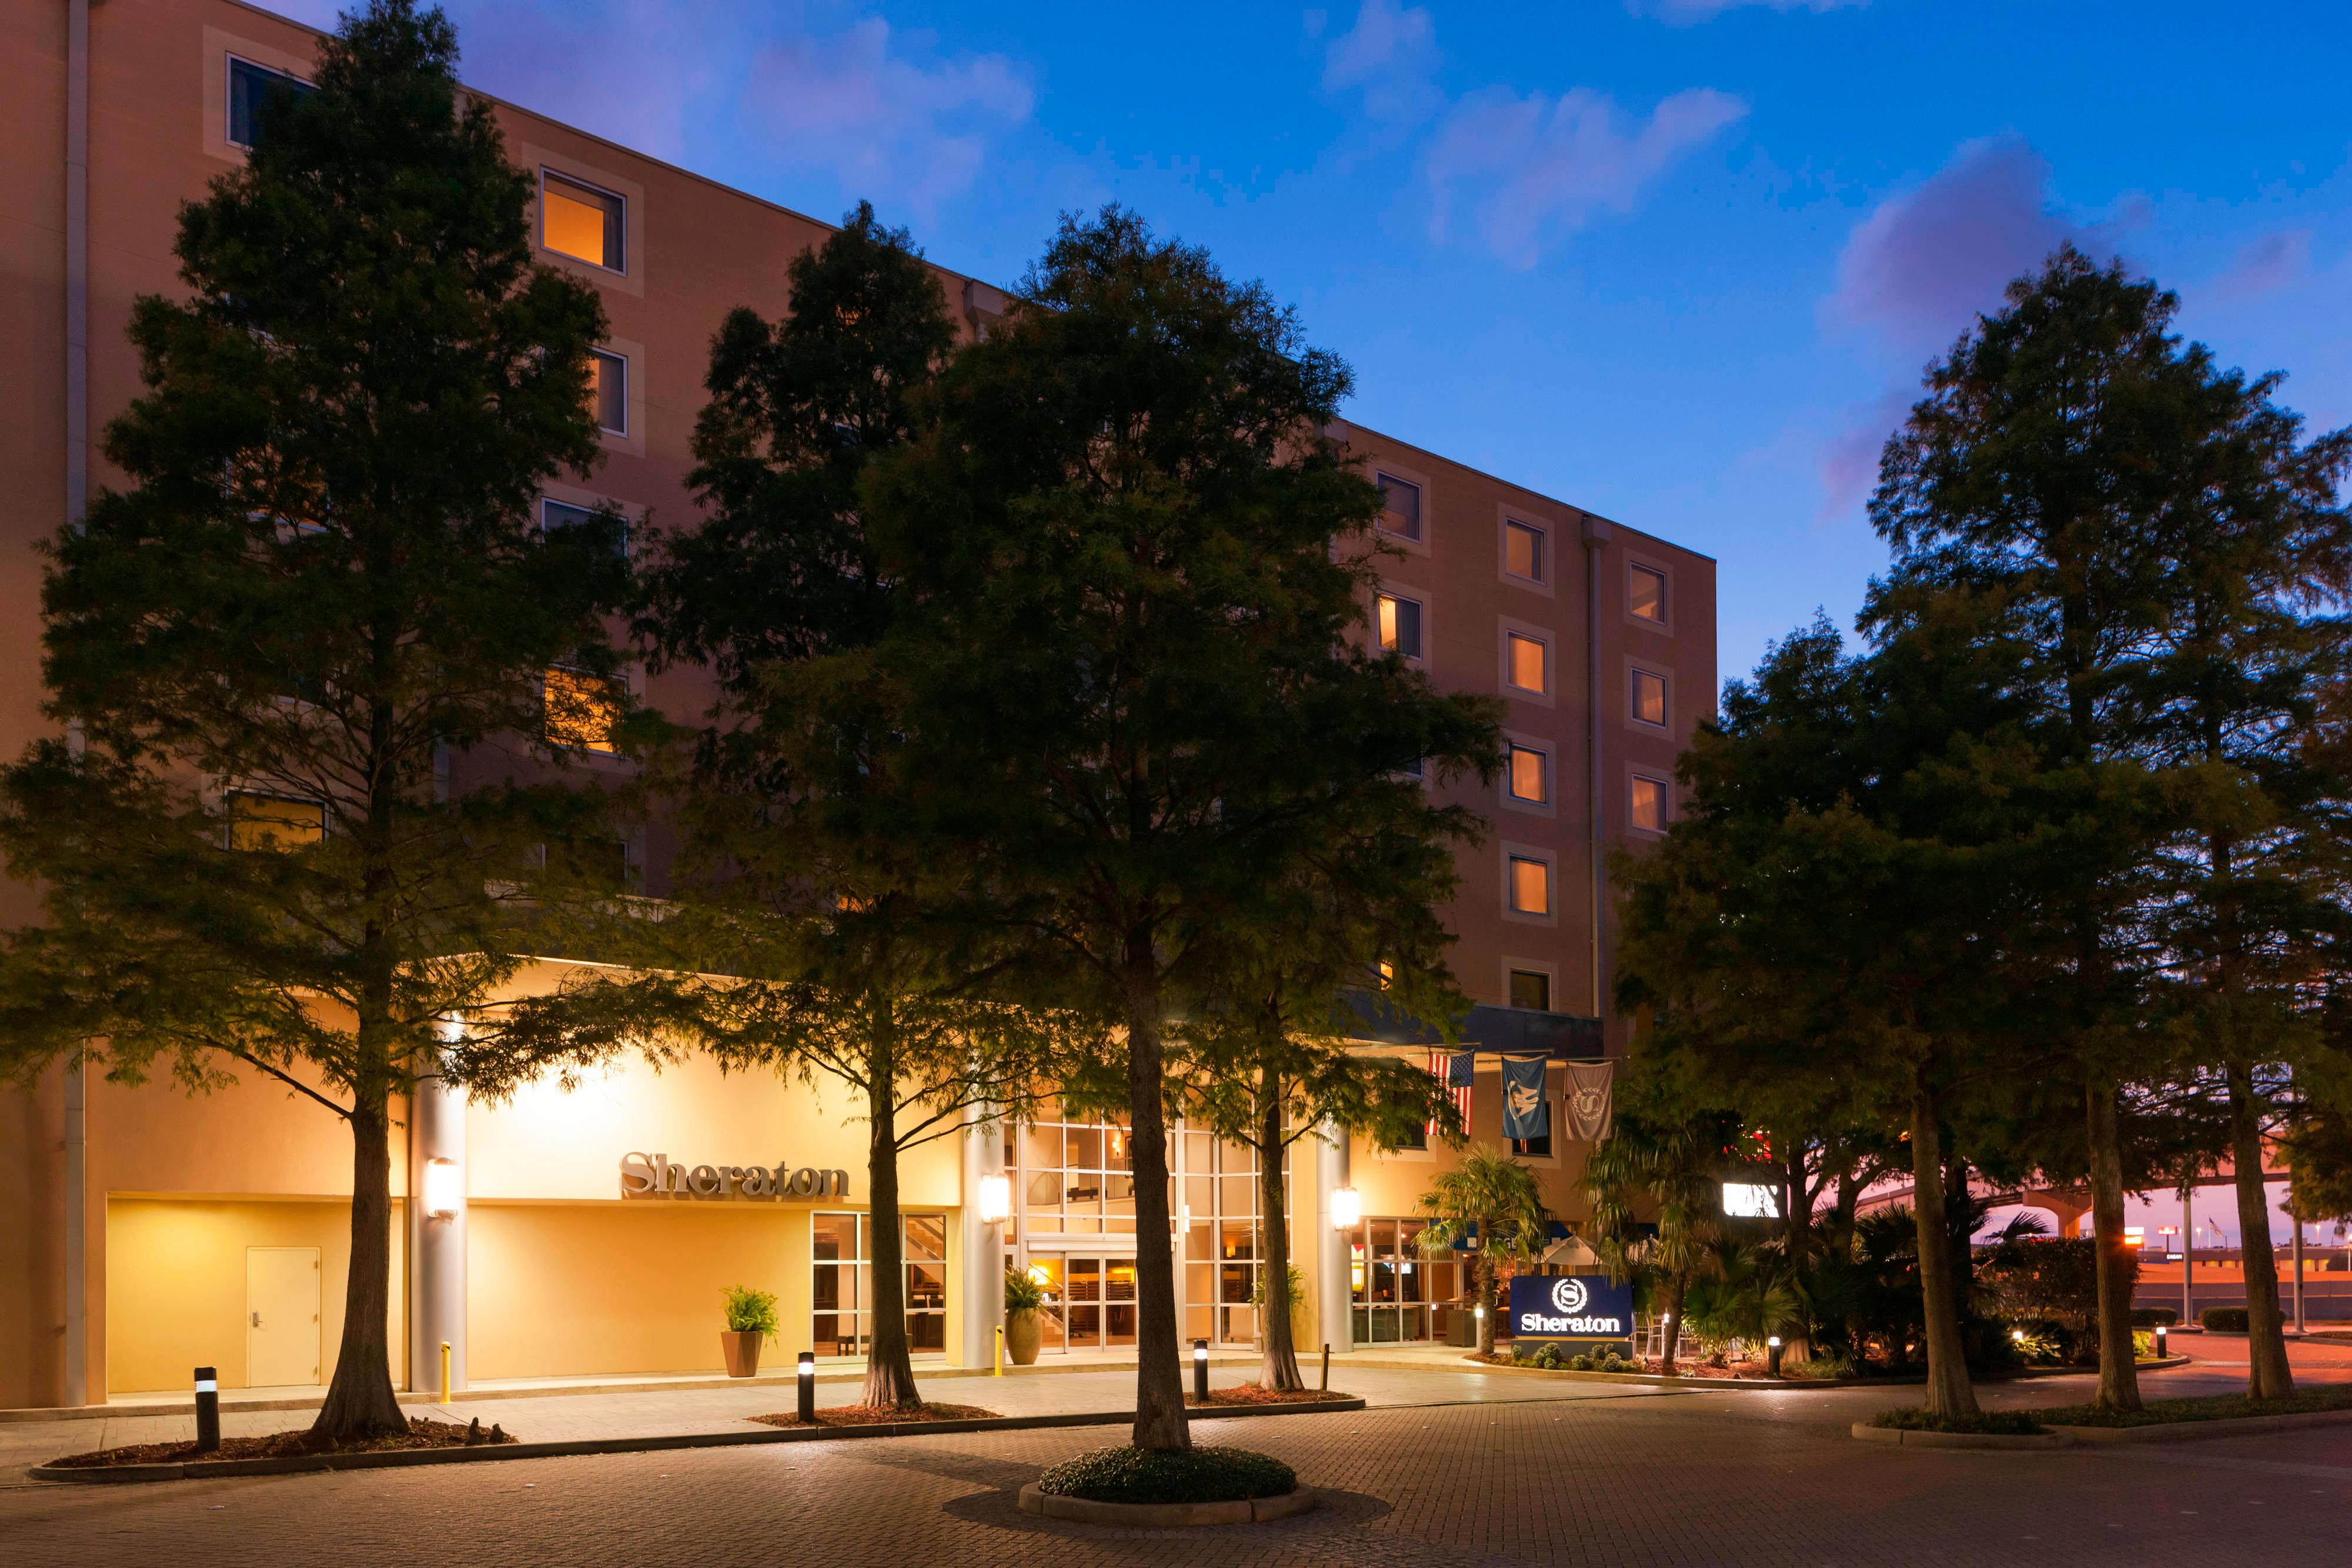 Sheraton Metairie-new Orleans